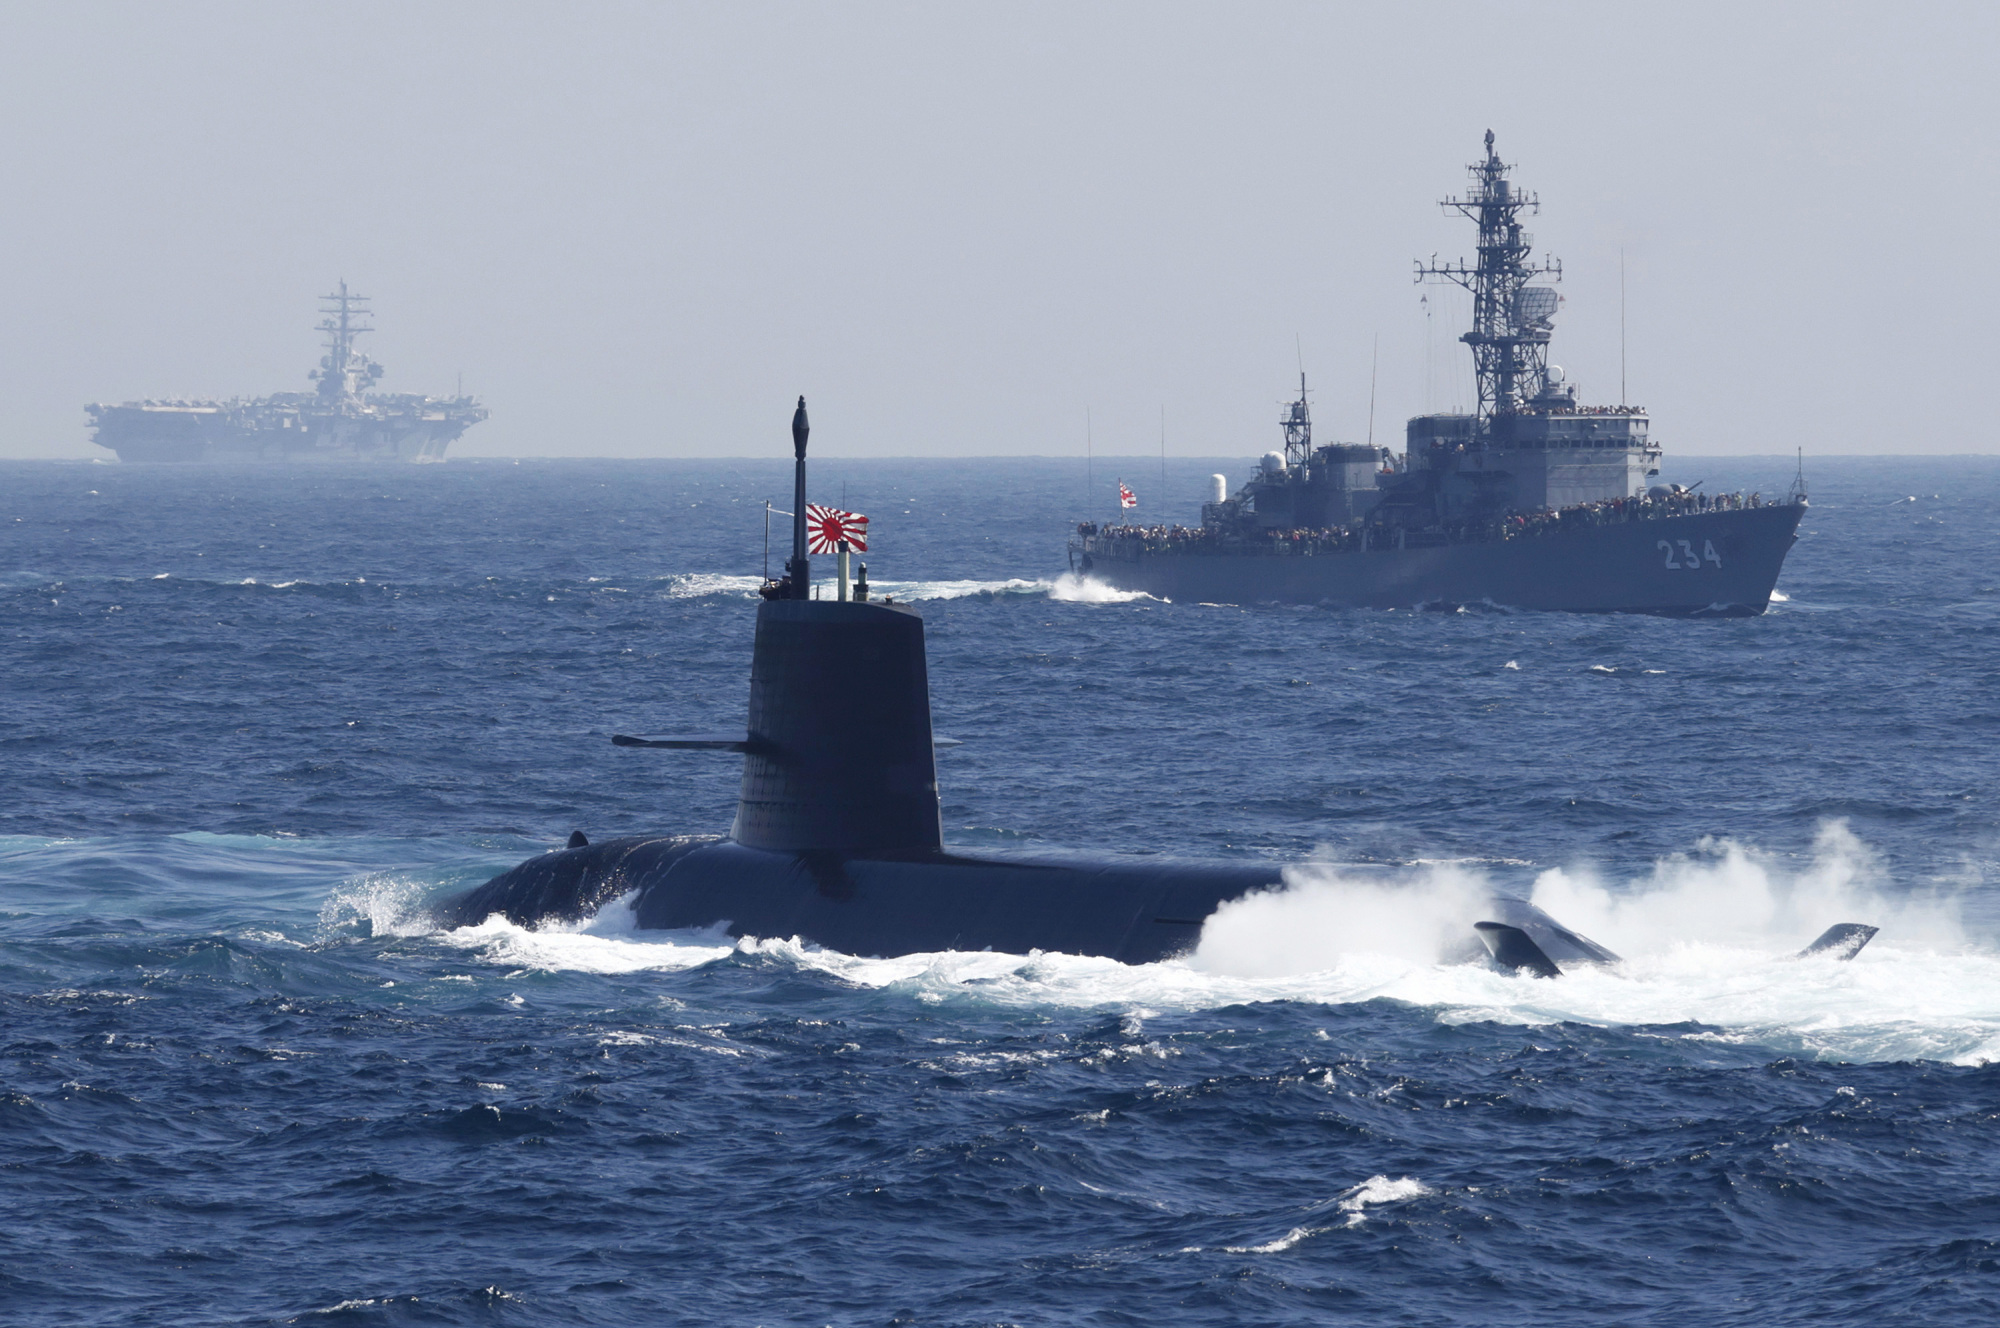 The Maritime Self-Defense Force submarine Kokuryu, displaying the Rising Sun flag, sails past a vessel during a fleet review in Sagami Bay, off Yokosuka, Kanagawa Prefecture, in October 2015. | BLOOMBERG